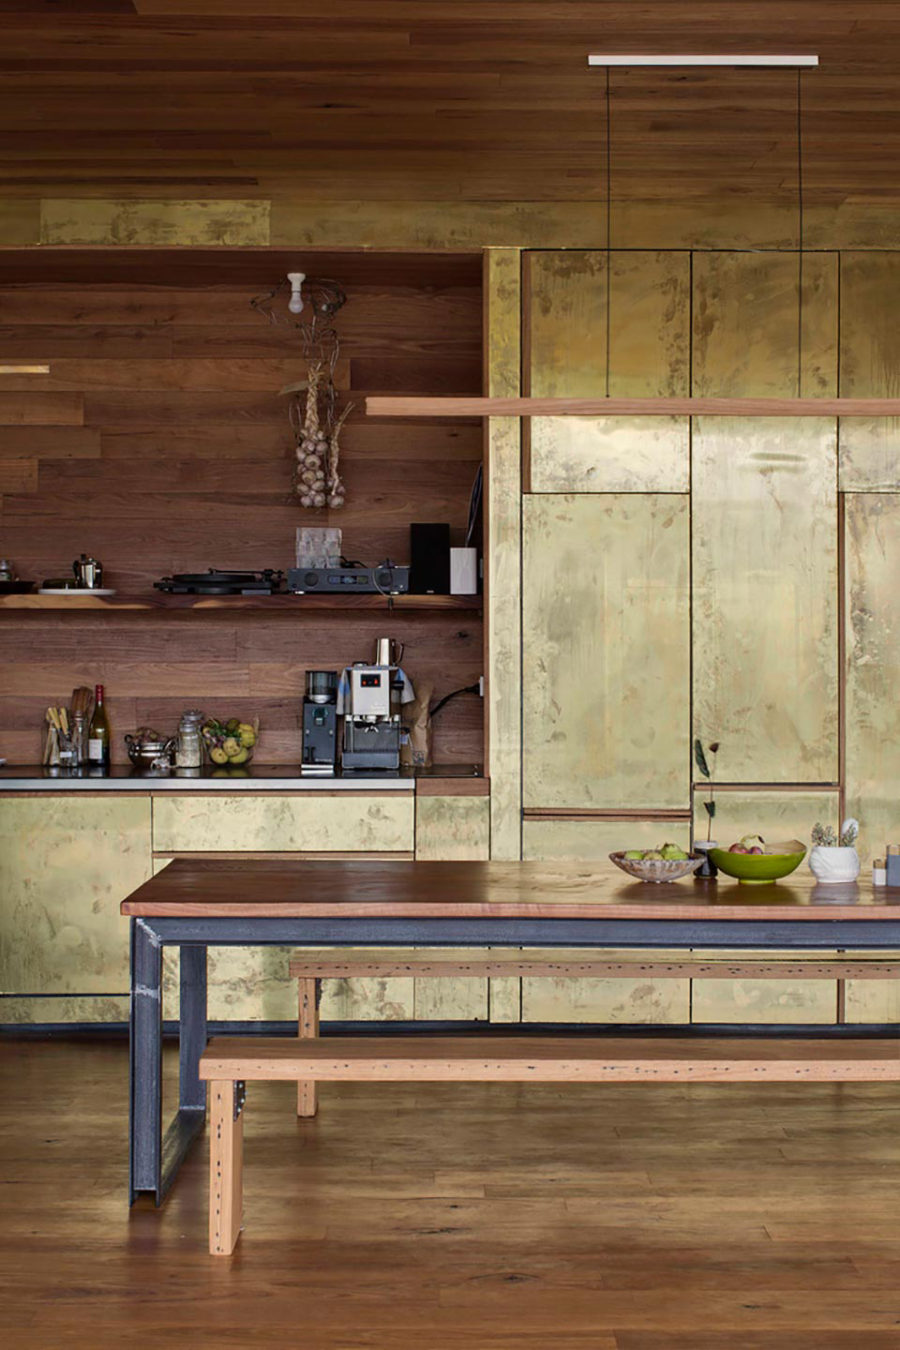 Kitchen cabinets are covered with brass